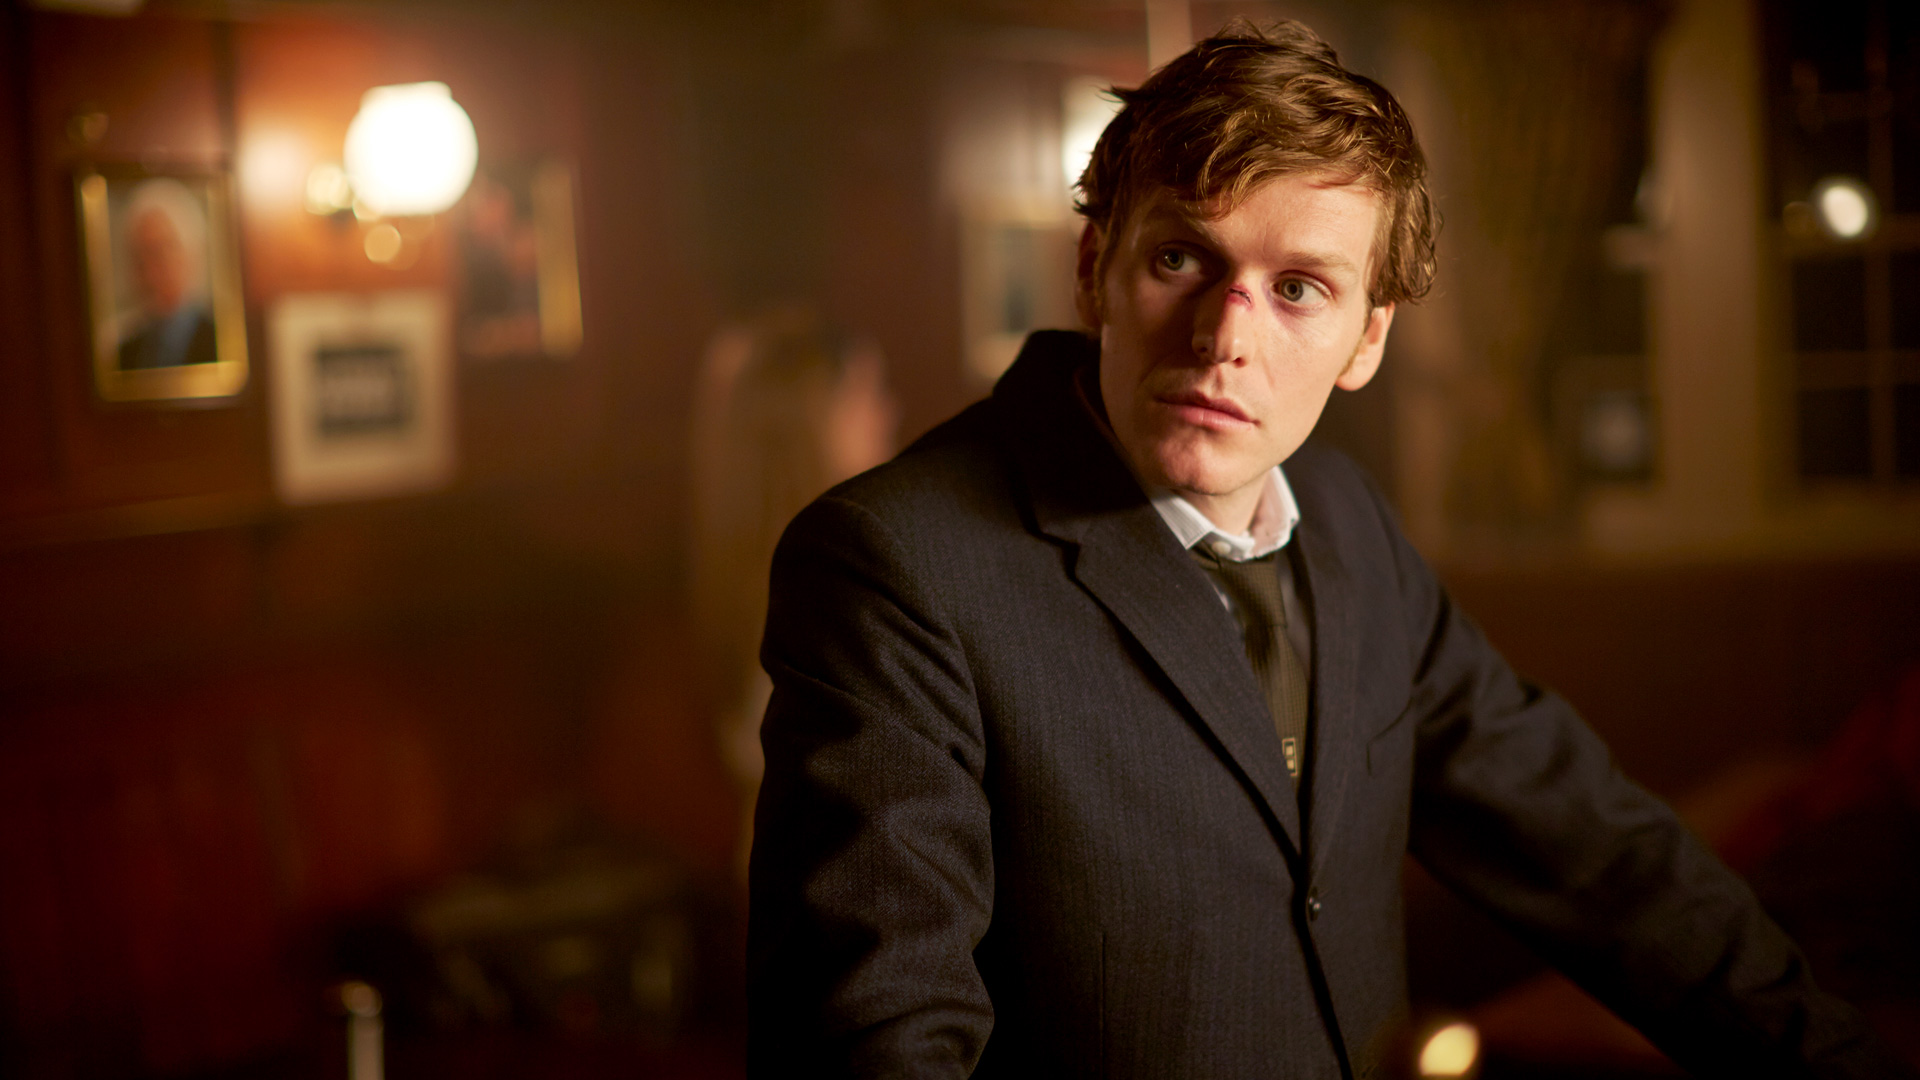 endeavour-s2-ep1-synopsis-hires.jpg